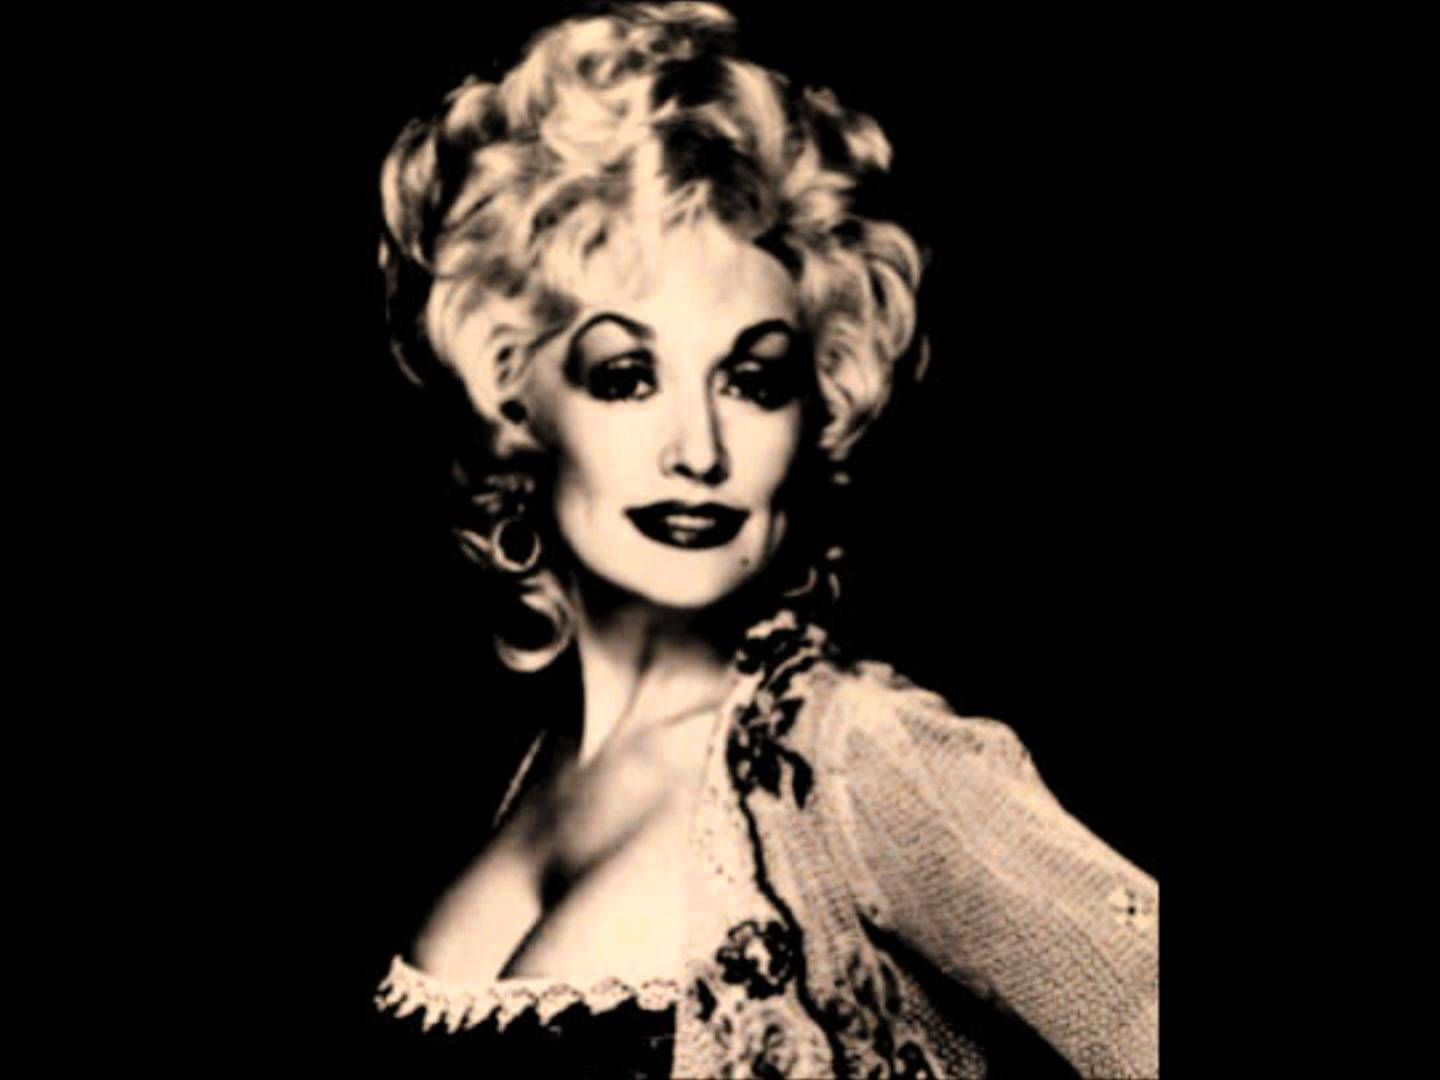 Dolly Parton Silver Dagger Silver Dagger Also Known As Katy Dear Is An American Folk Ballad It Likely Traces Its Roo Dolly Parton Famous Blondes Singer